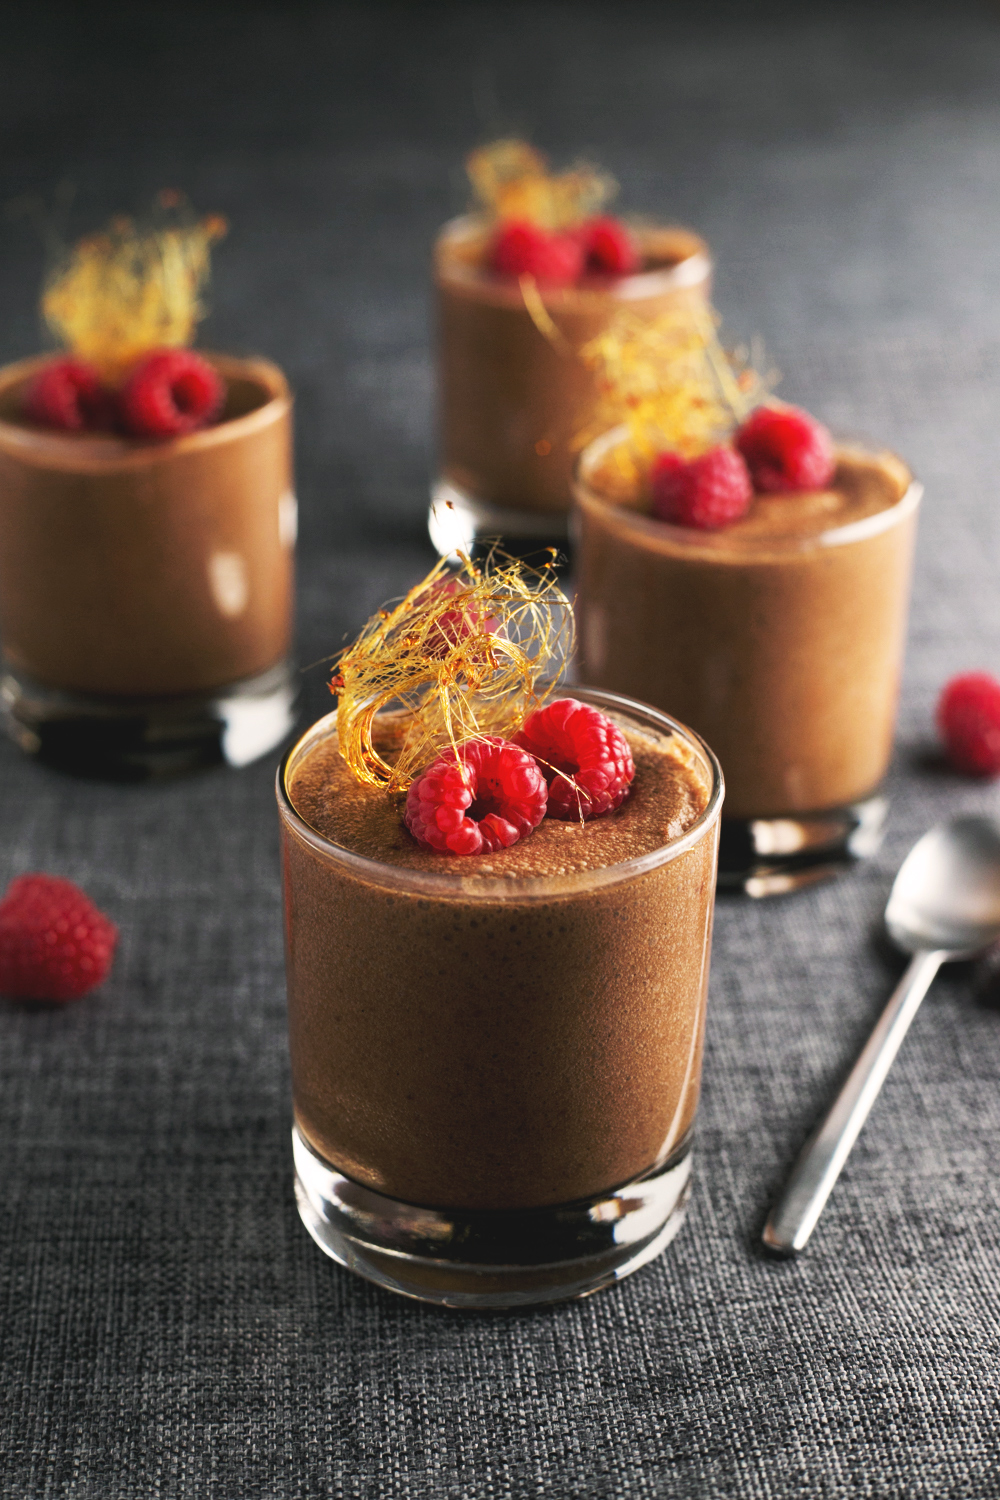 vegan chocolate mousse made with aquafaba  chickpea brine